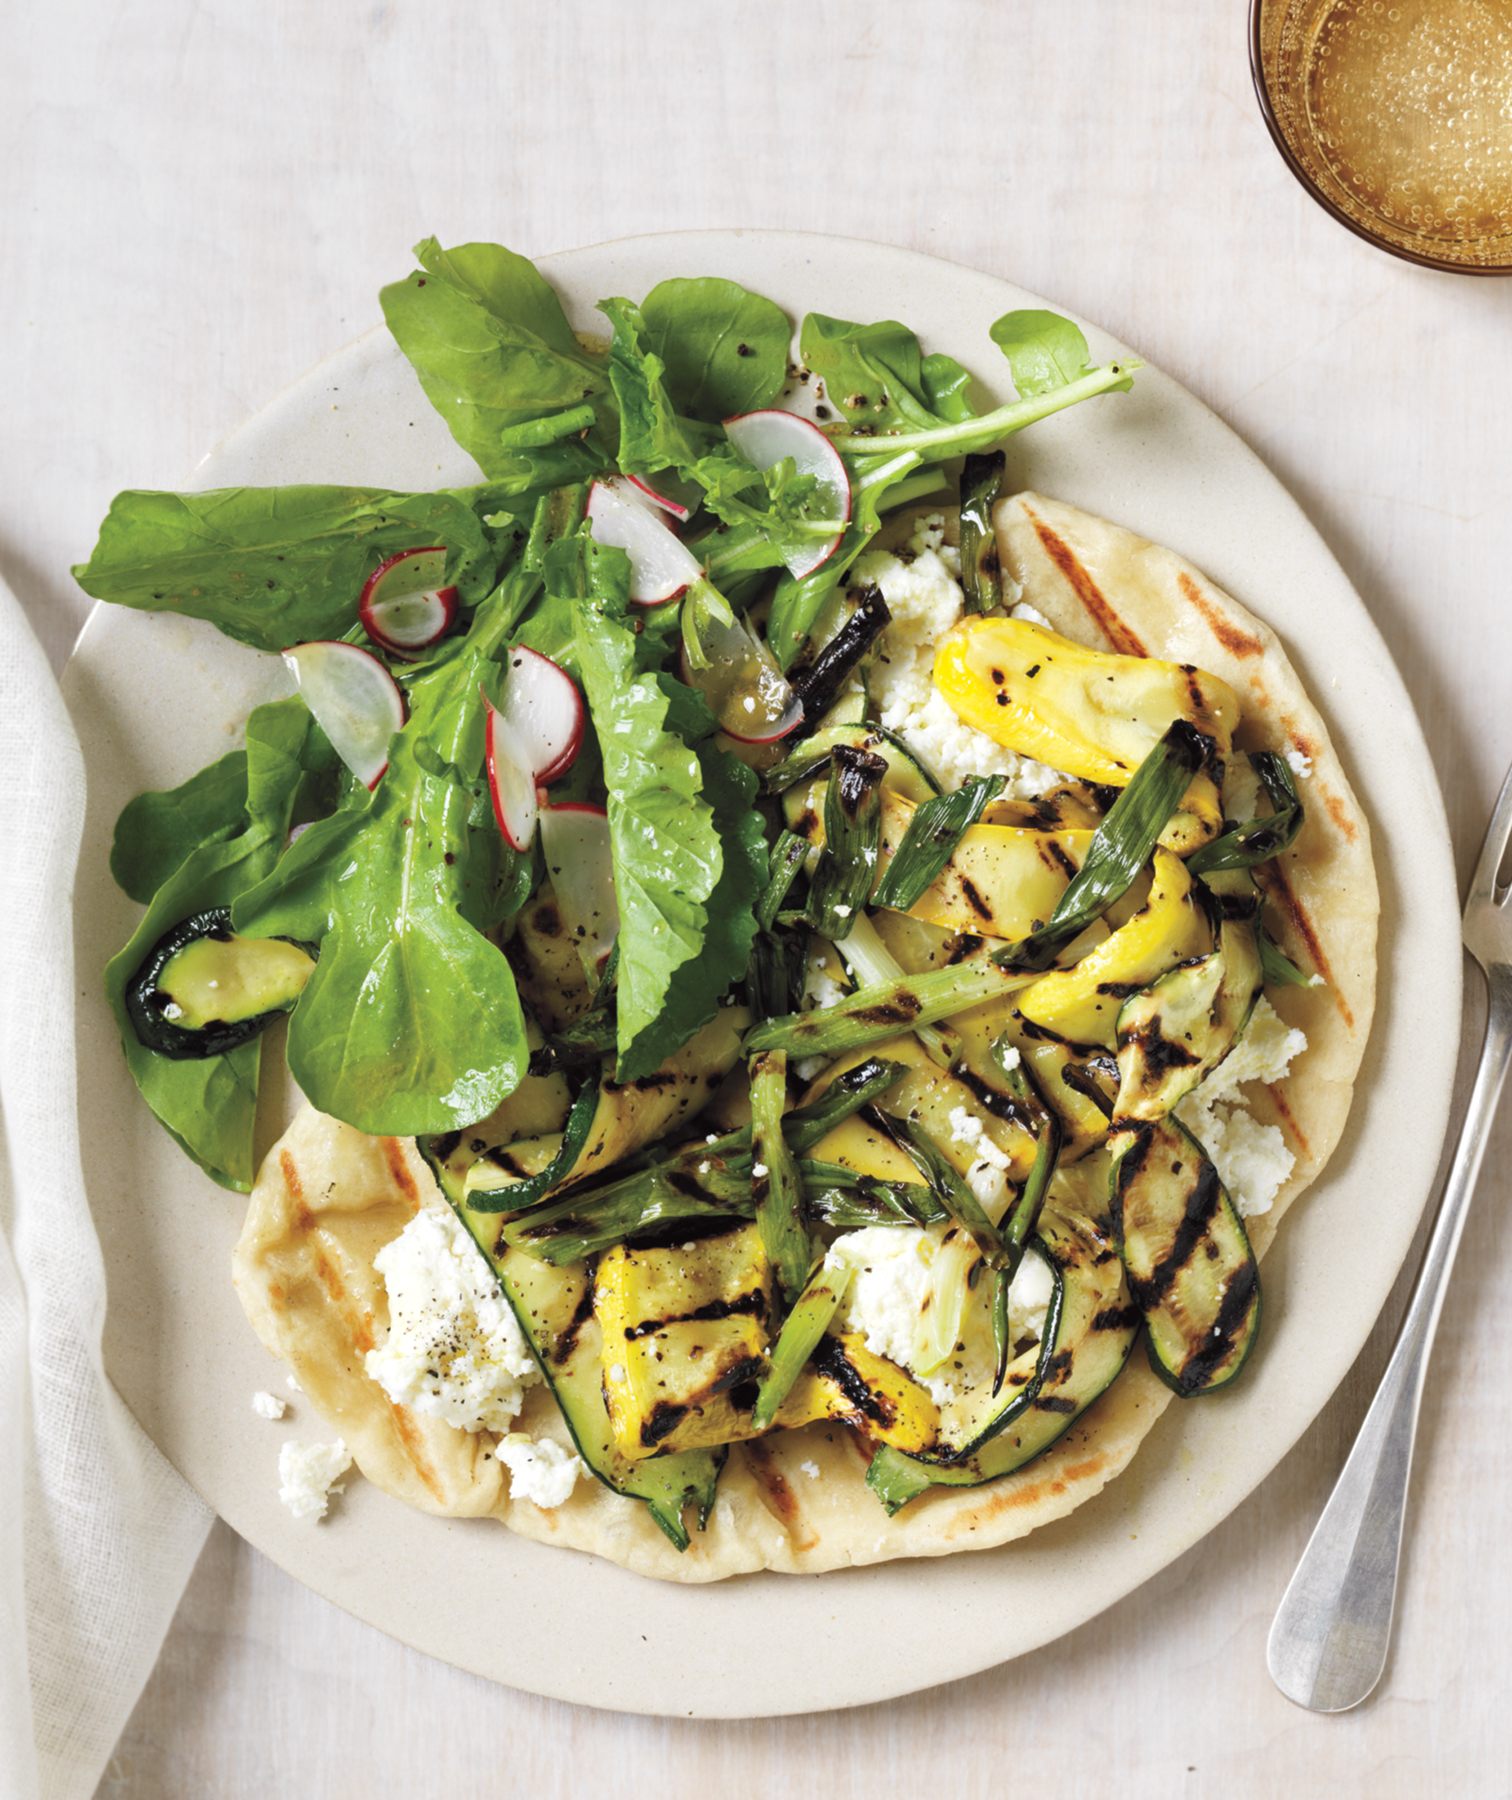 Grilled Pizzas With Ricotta, Summer Squash, and Scallions